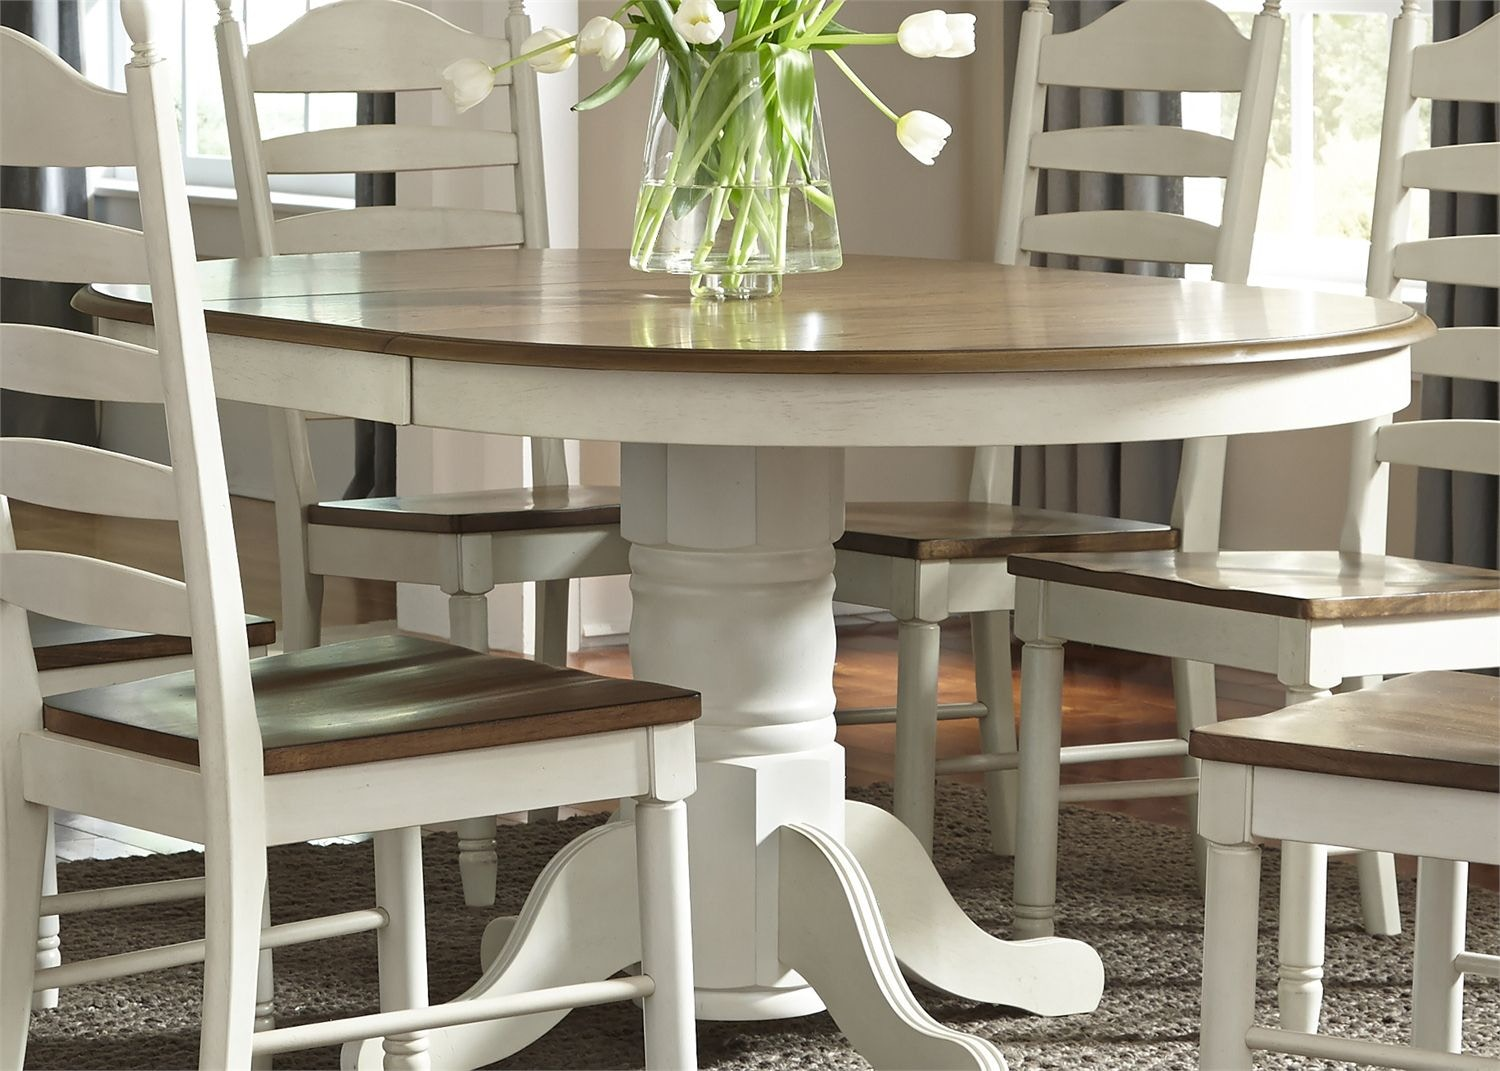 Liberty Furniture Dining Room Pedestal Table Top   Tyndall Furniture U0026  Mattress   Charlotte U0026 Pineville, NC And Fort Mill, SC